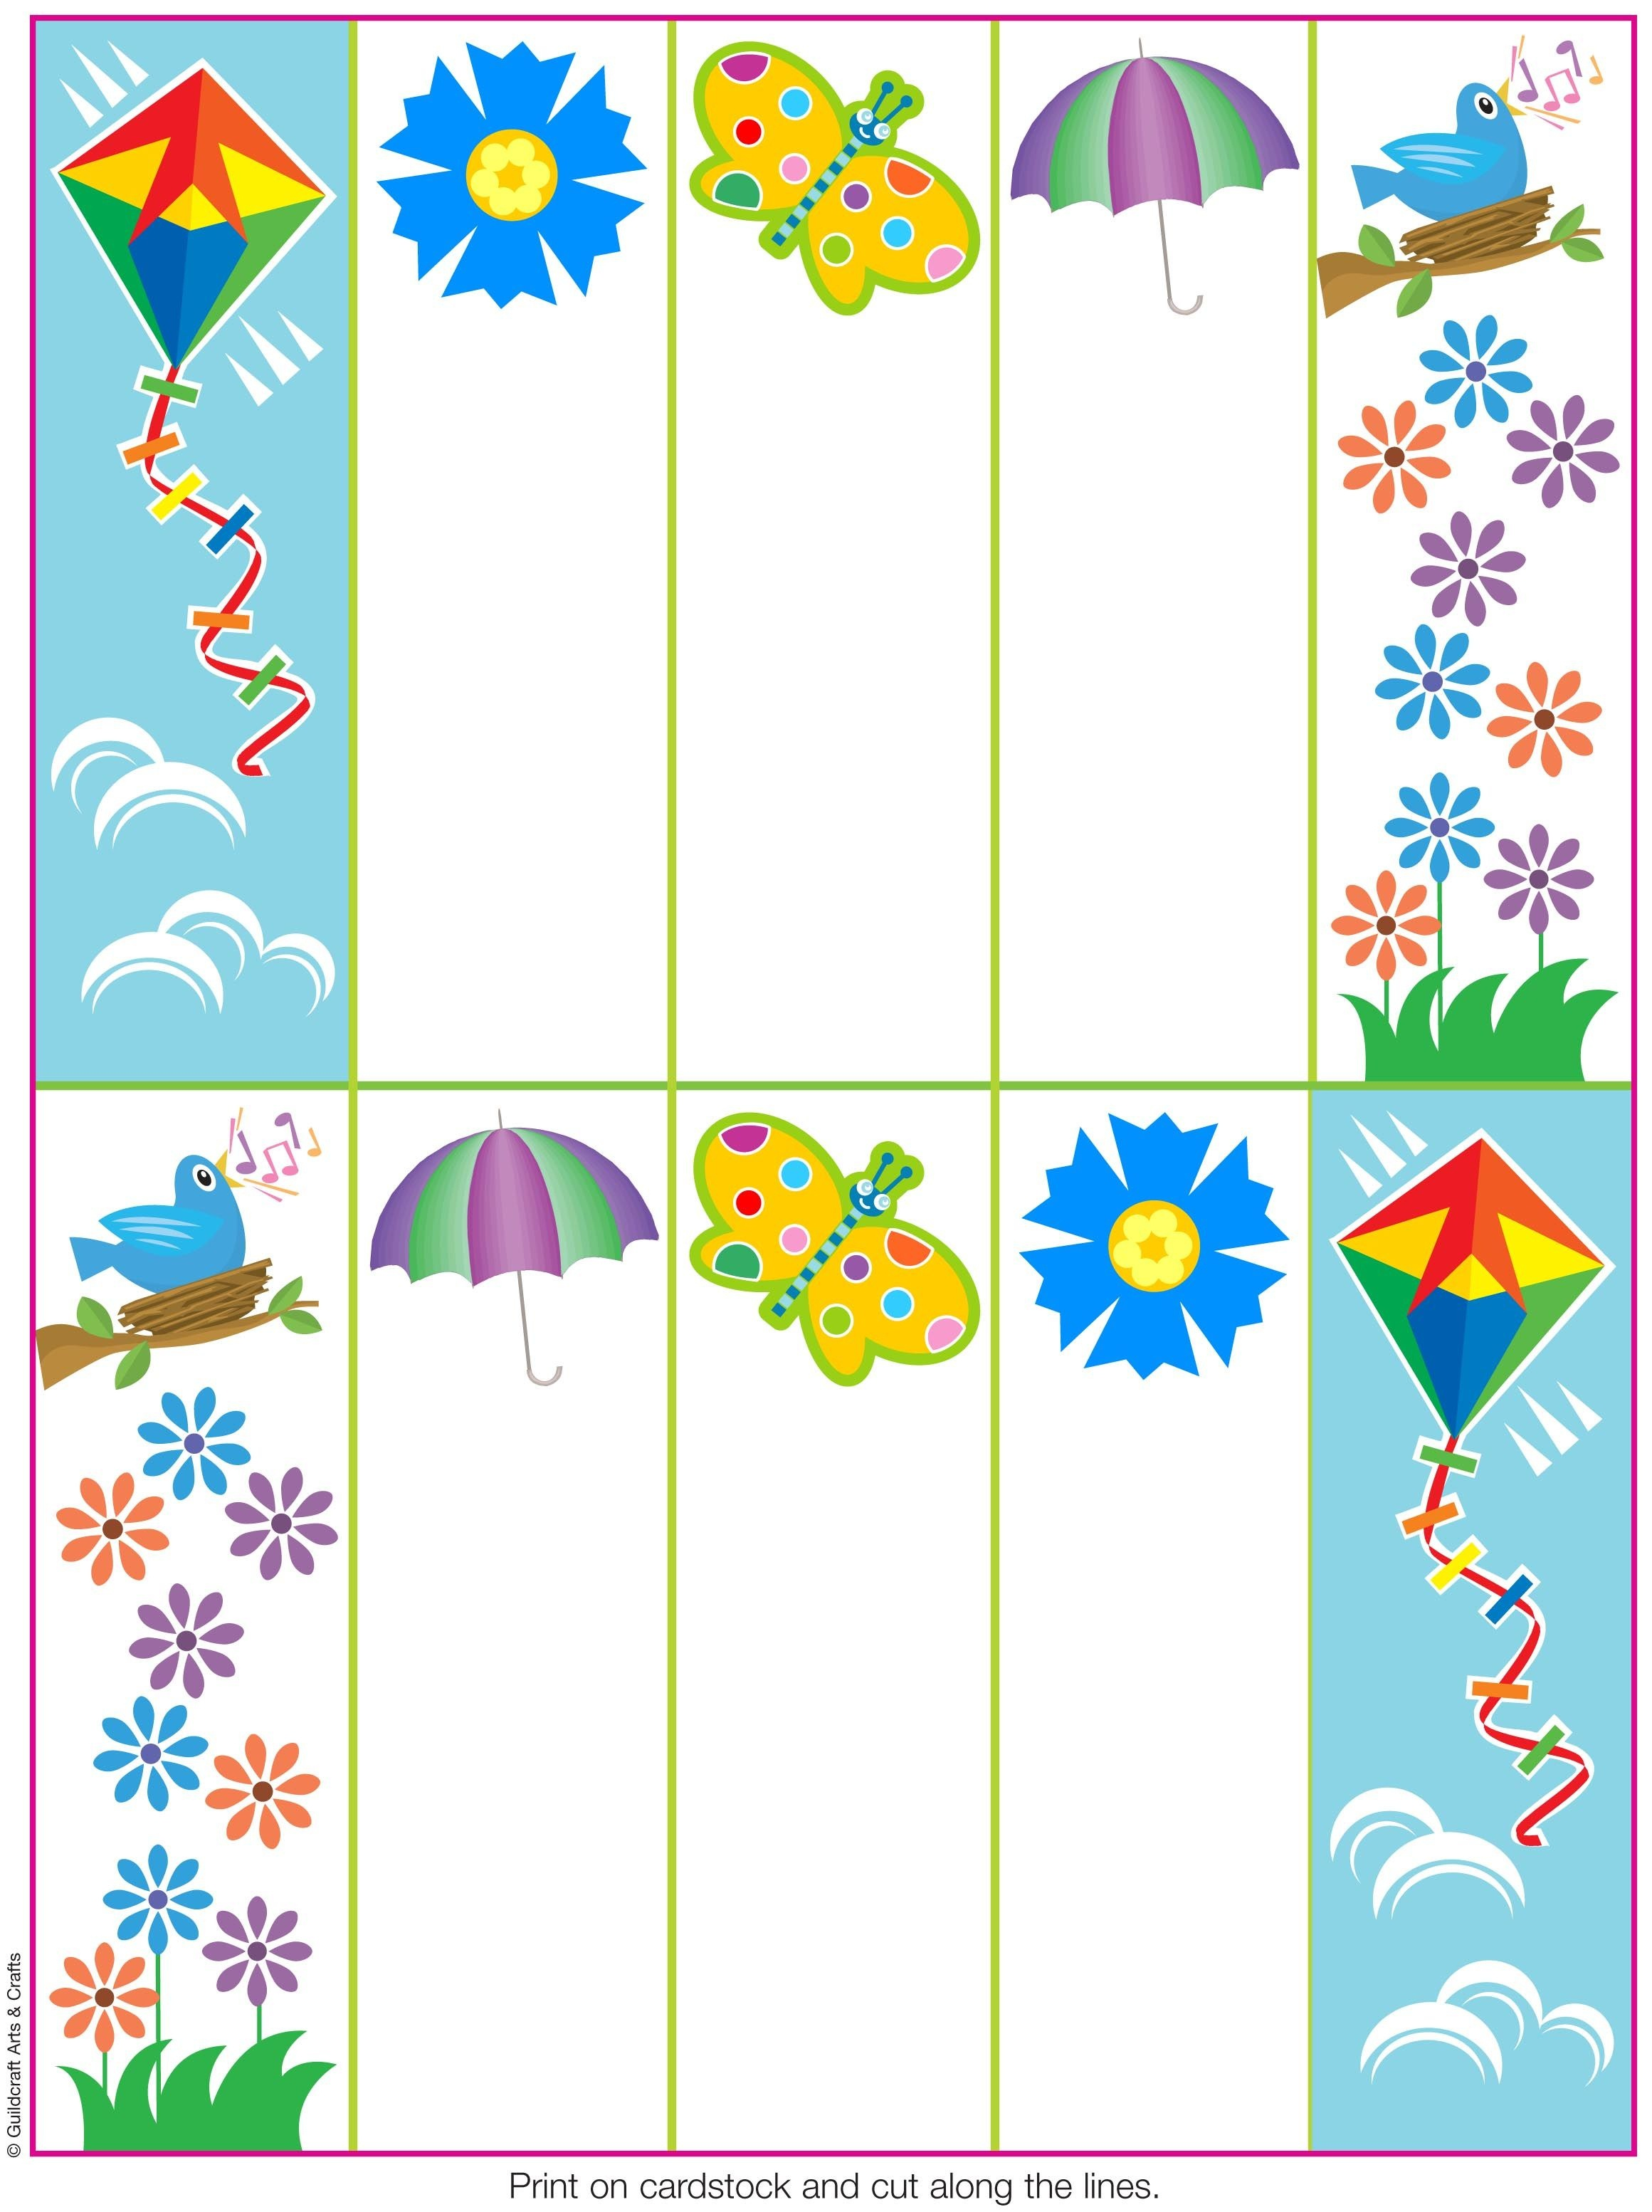 Pinguildcraft Arts & Crafts On Printables   Bookmarks, How To - Free Printable Spring Bookmarks